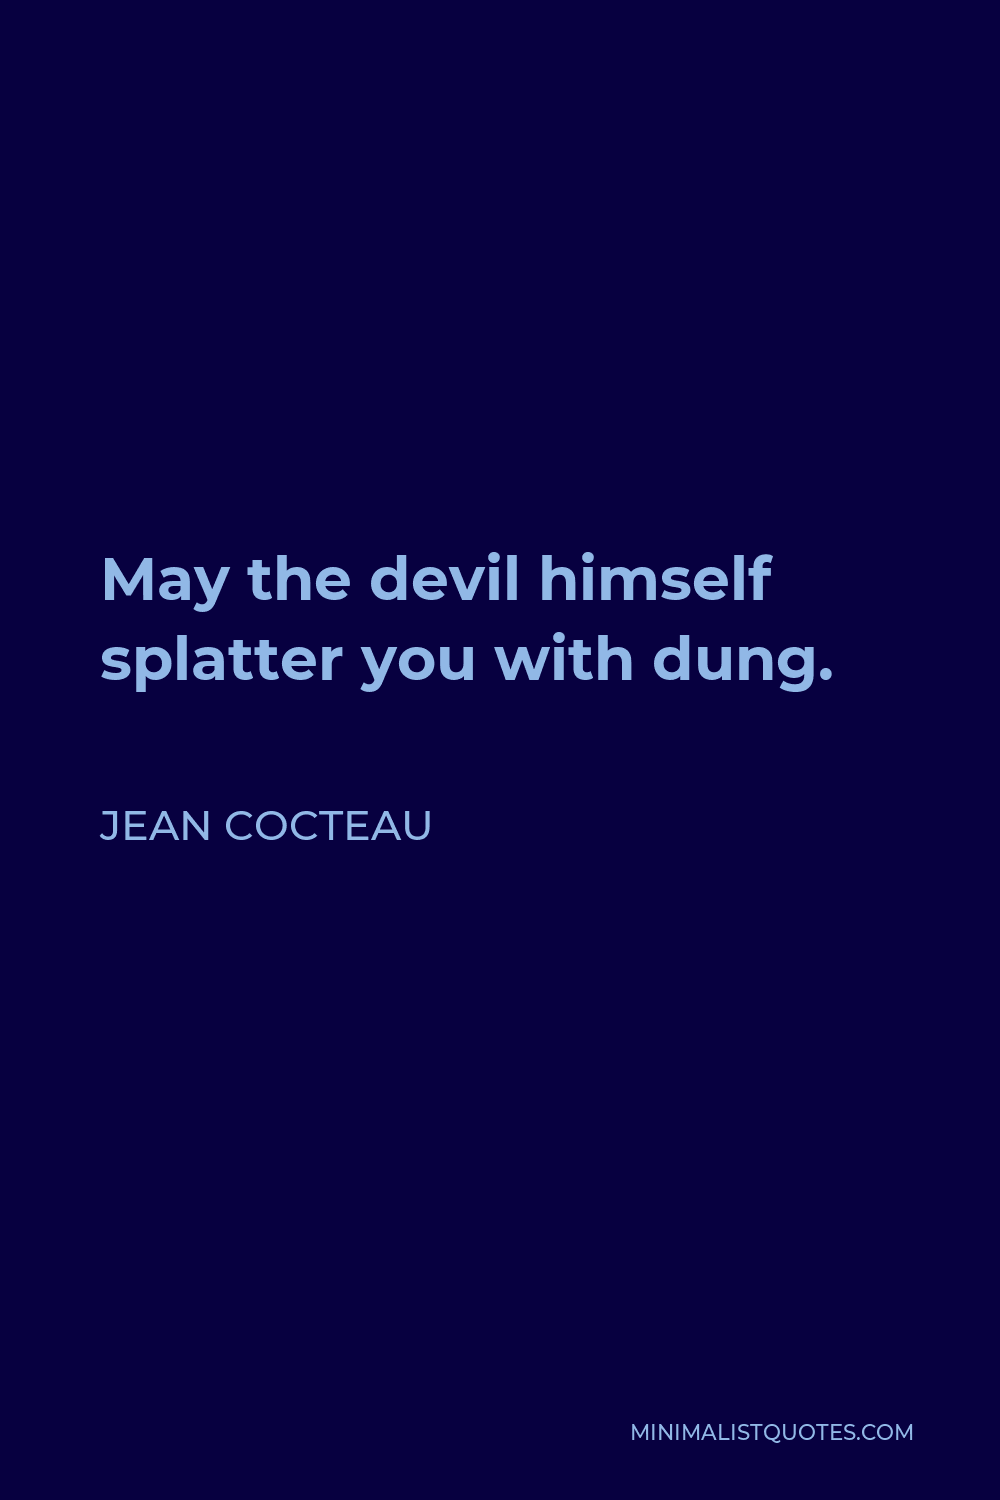 Jean Cocteau Quote - May the devil himself splatter you with dung.